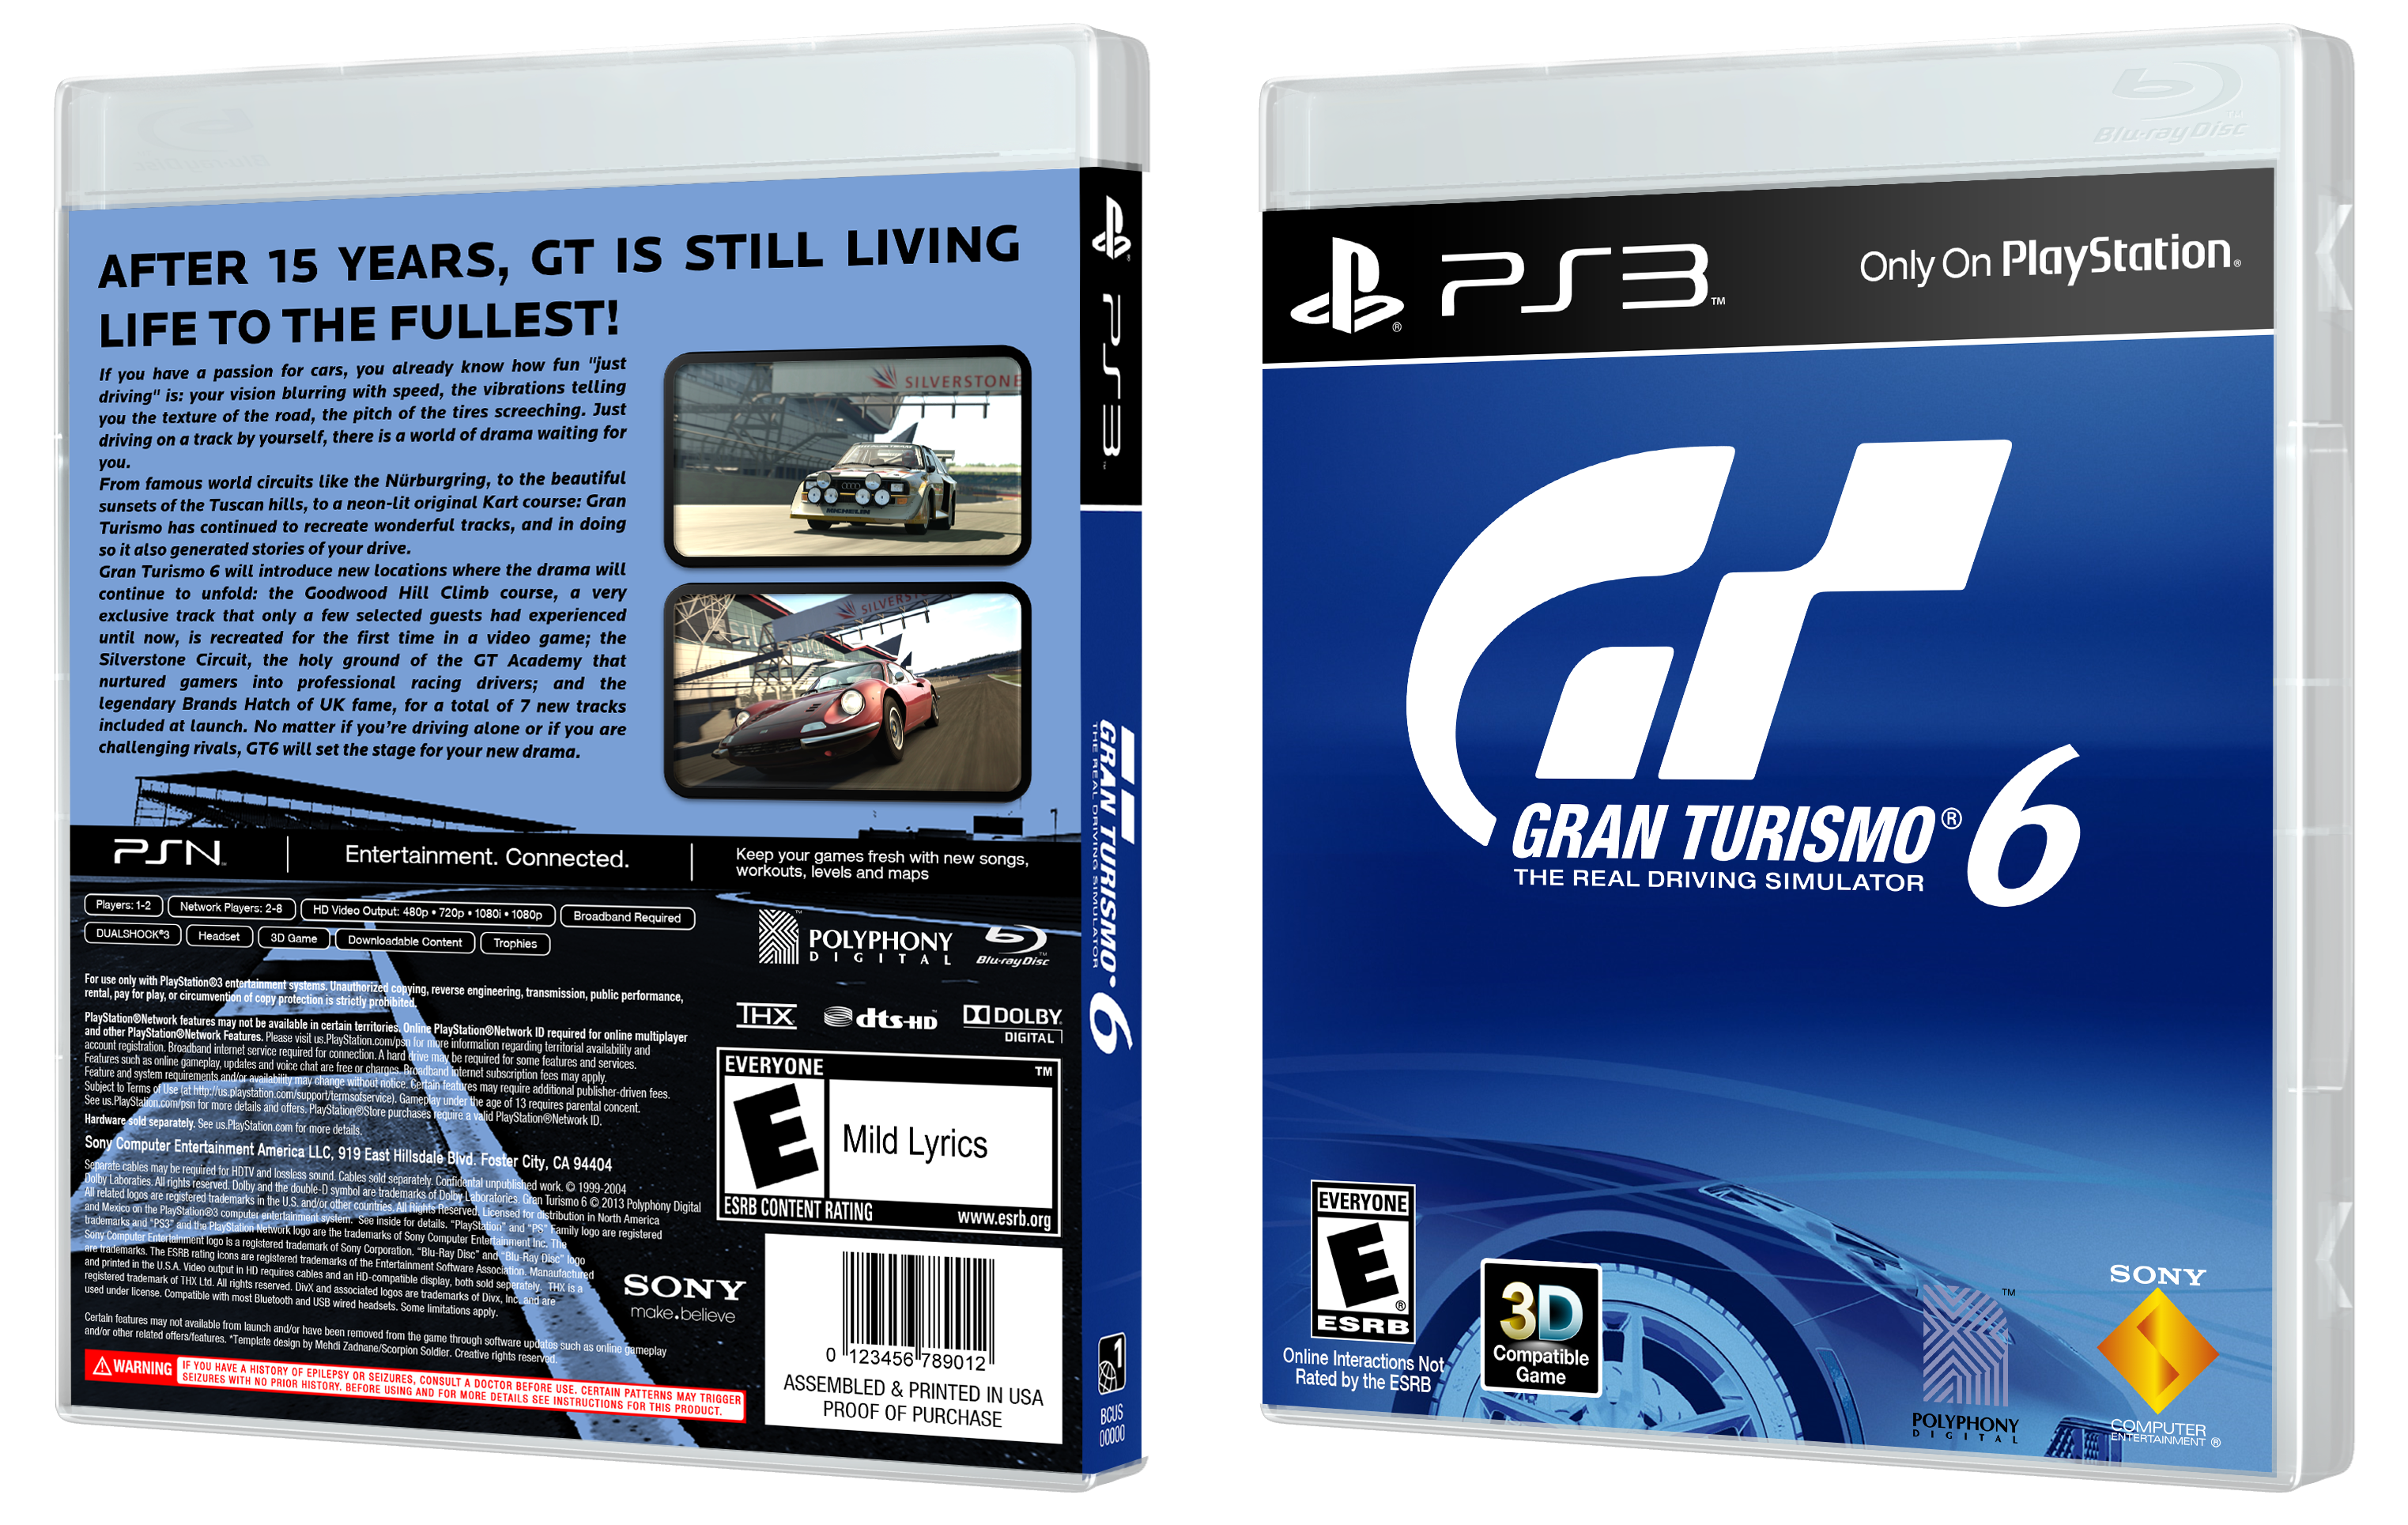 gran turismo 6 playstation 3 box art cover by edwardpines. Black Bedroom Furniture Sets. Home Design Ideas